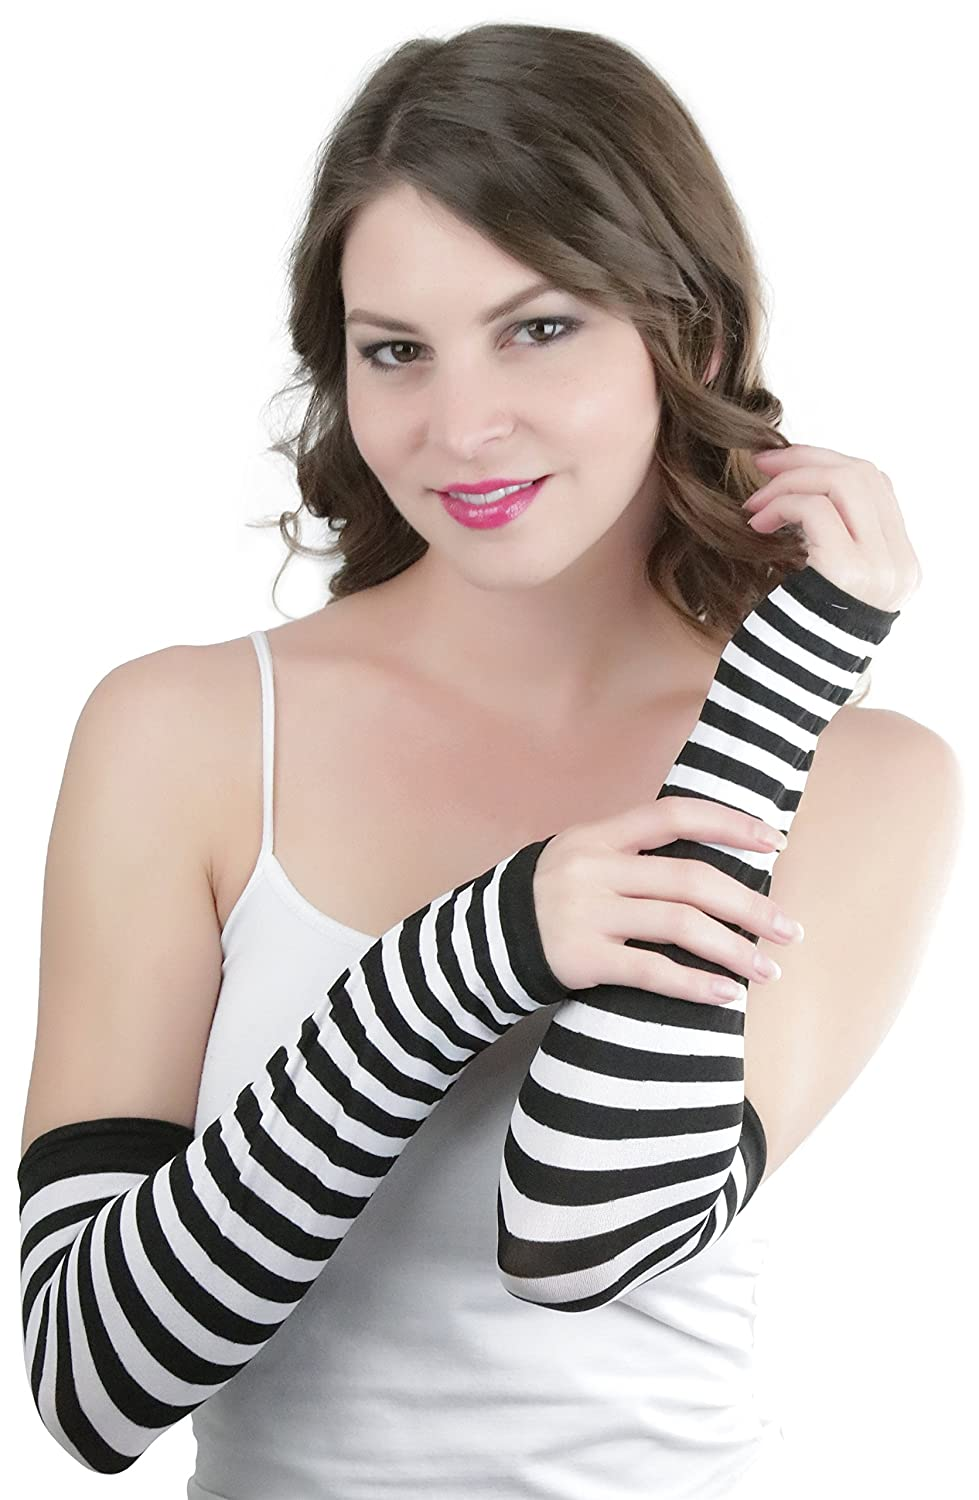 ToBeInStyle Women's Striped 100% Nylon Arm Length Warmers - Black with White Stripes _k_etwa_il2mhcsryol_ehi2b4